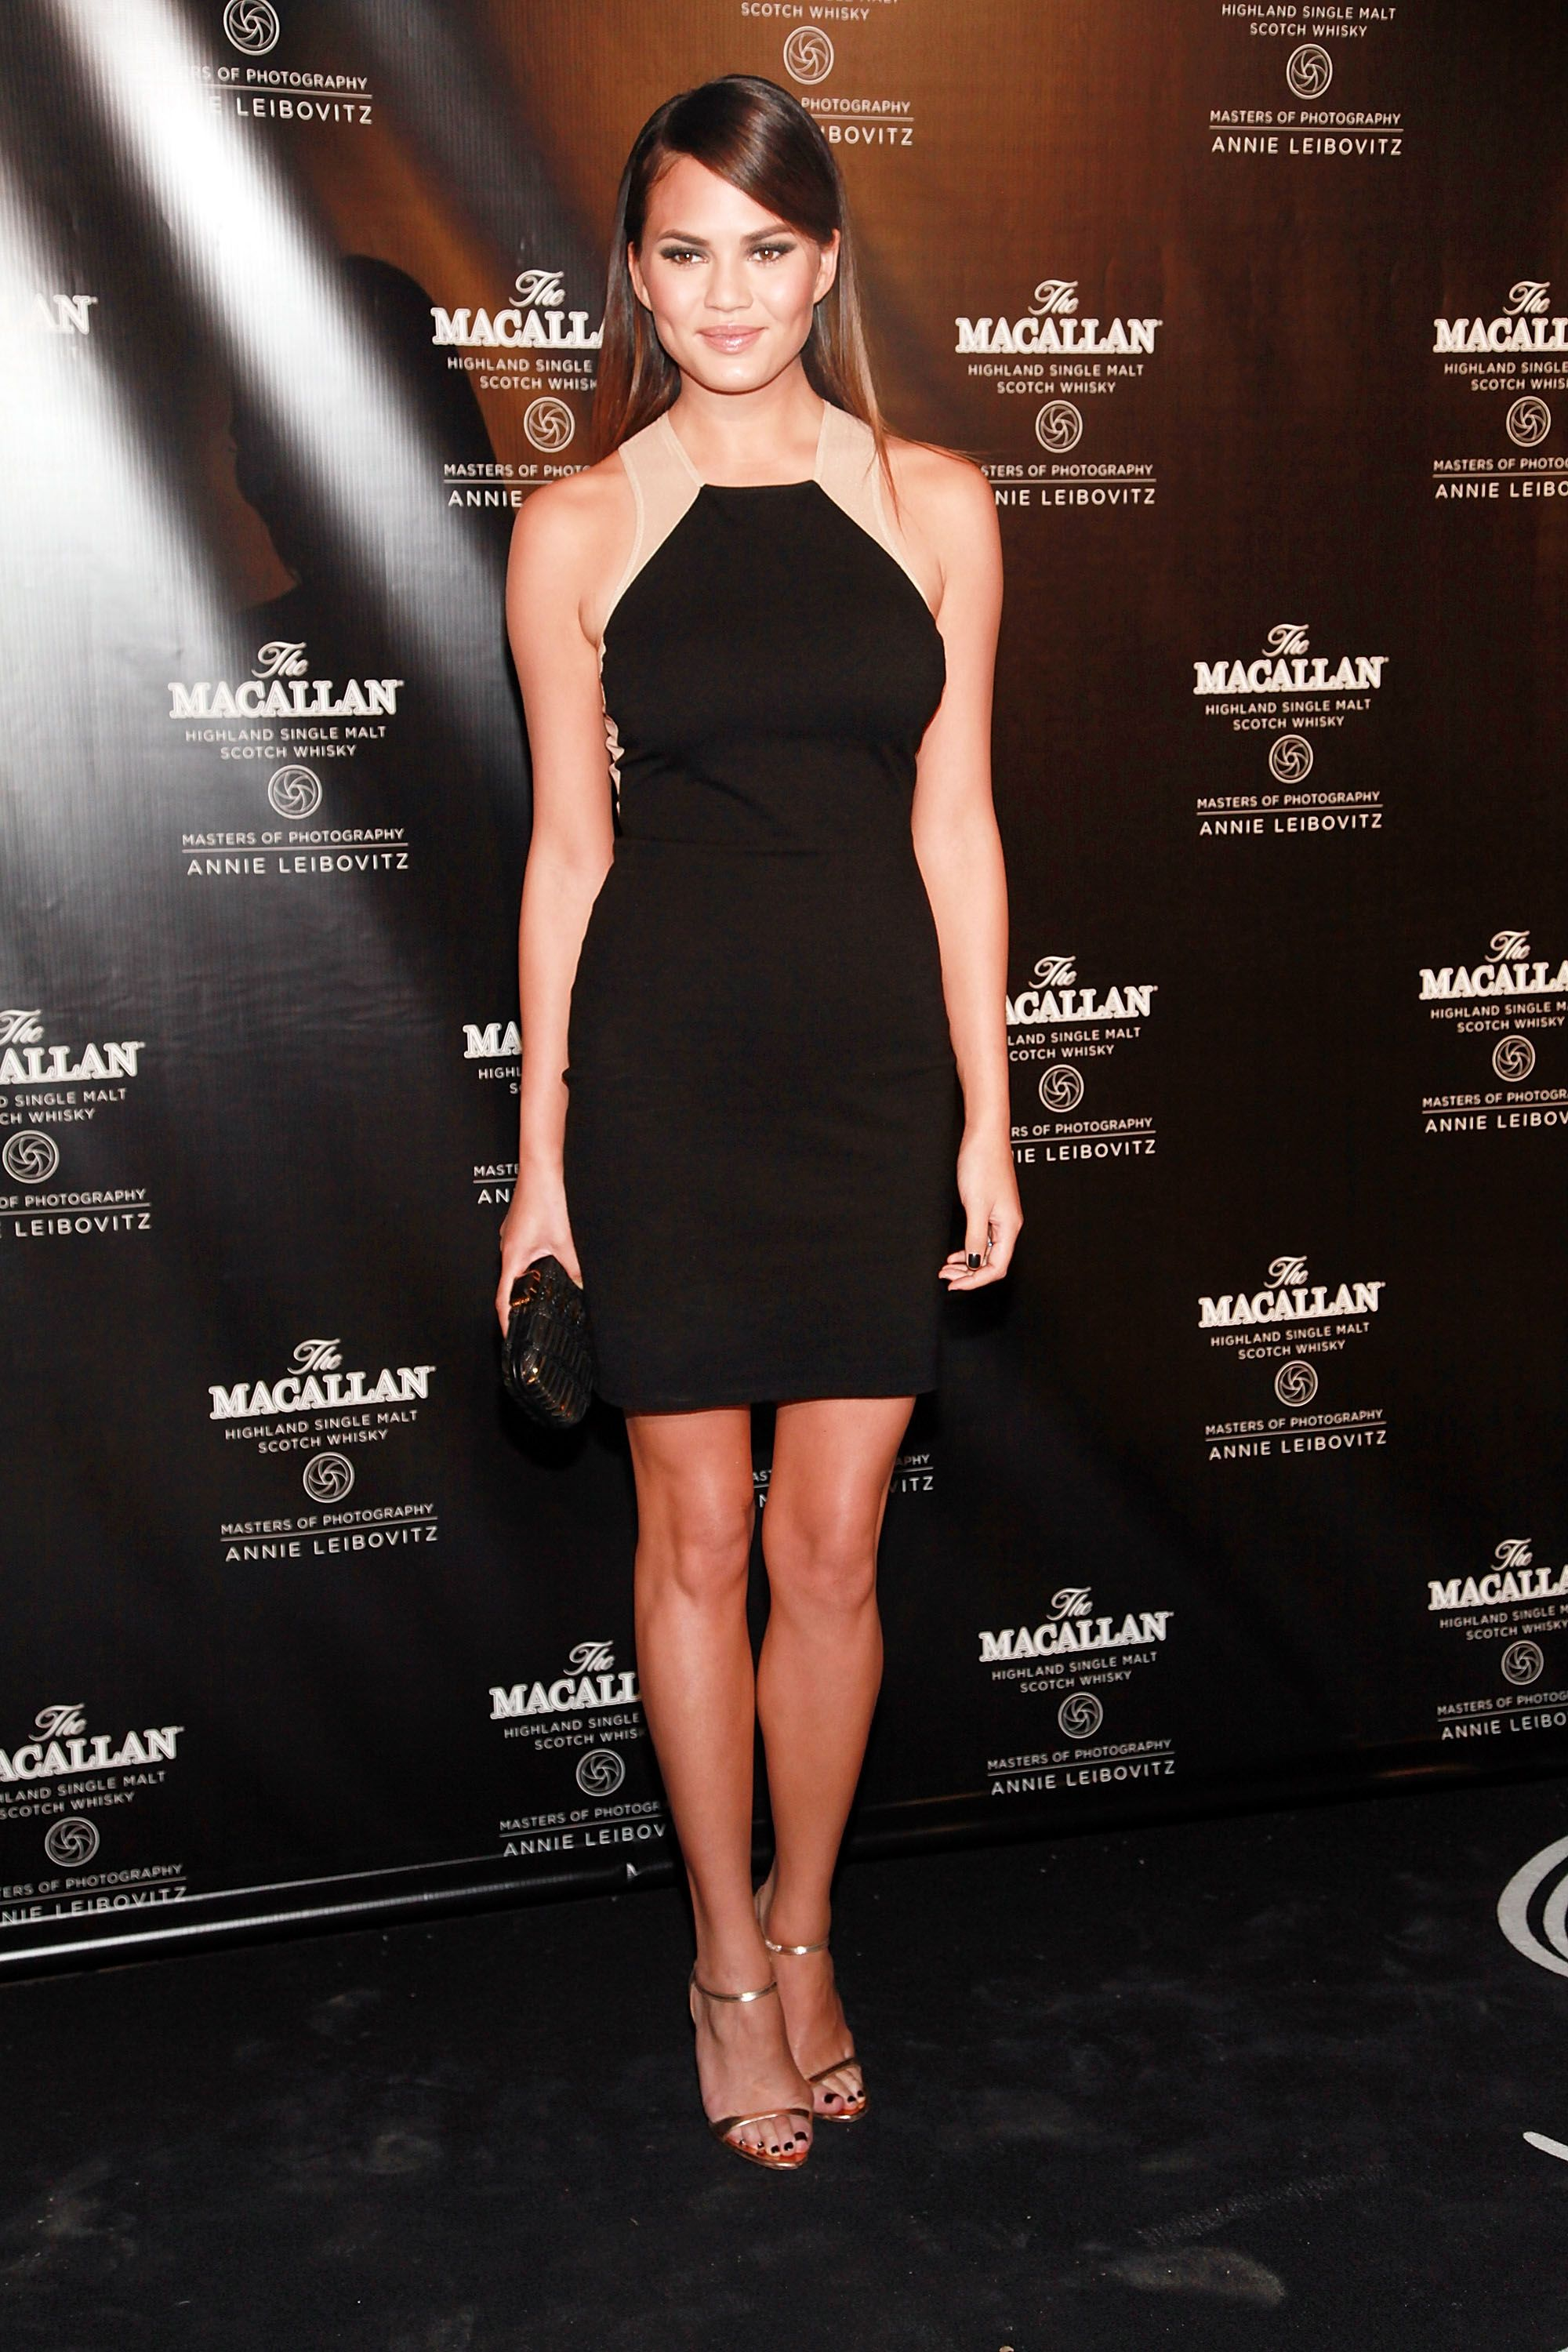 Chrissy Teigen At The Macallan Masters of Photography Series in New York.    - ELLE.com